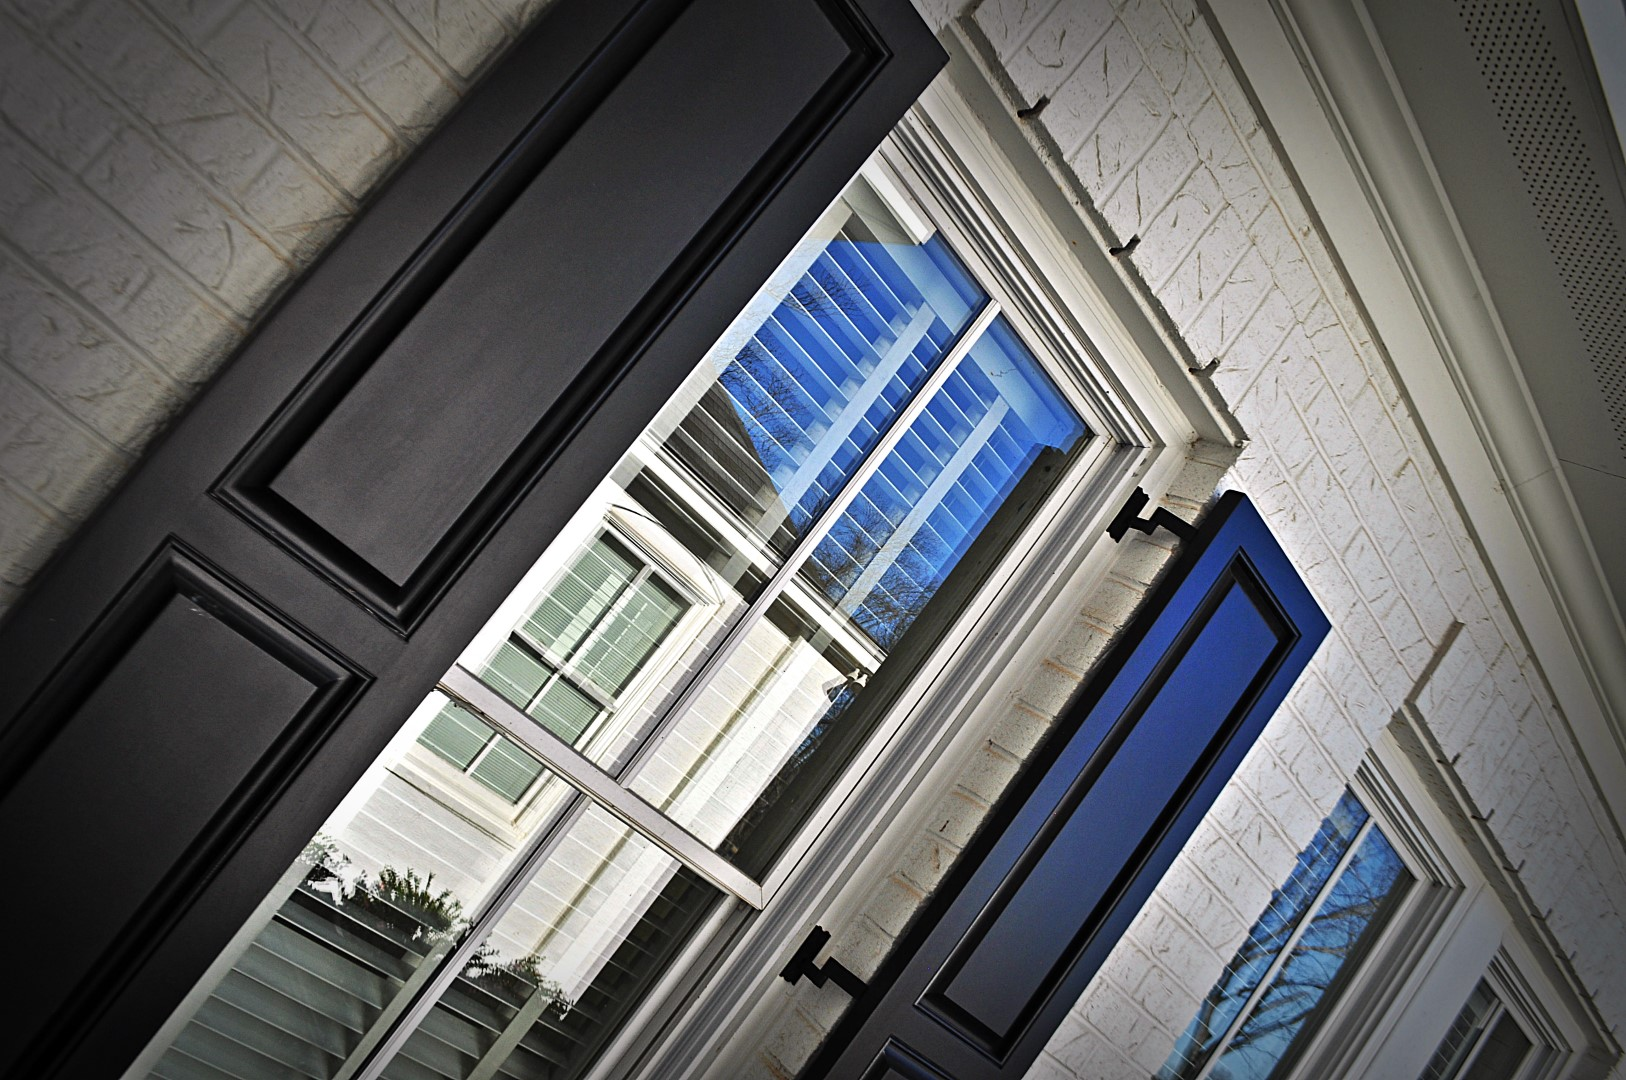 Exterior shutters for home or business.